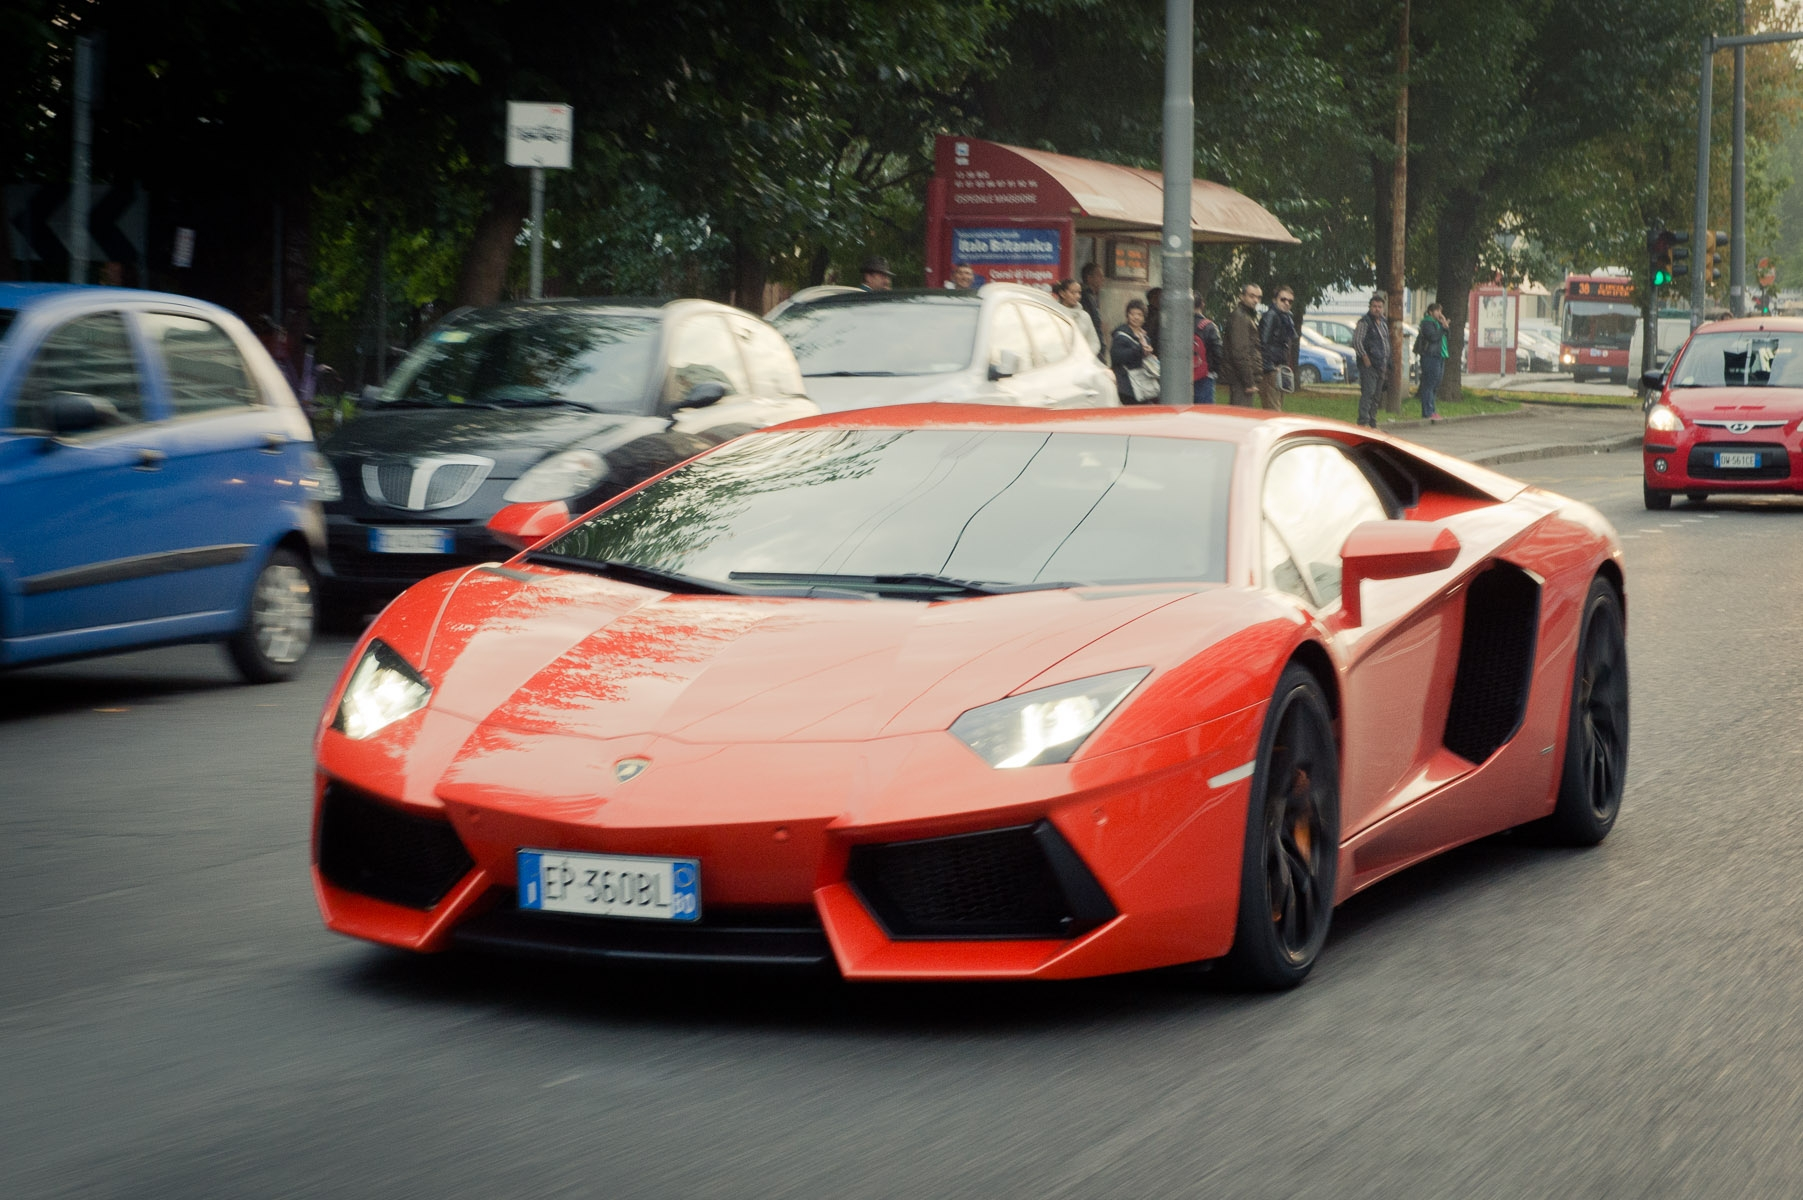 2013-lamborghini-aventador-lp700-4-orange-29